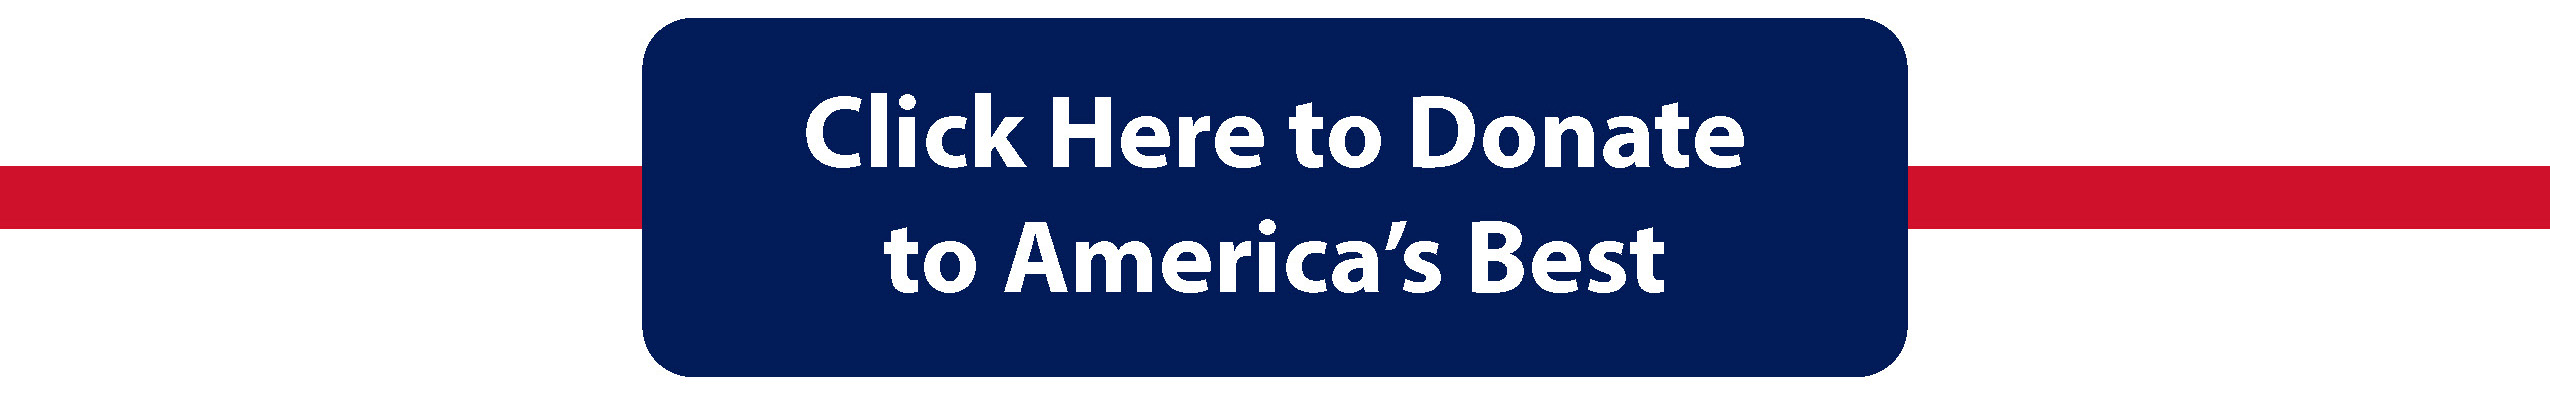 Click here to donate to America's best